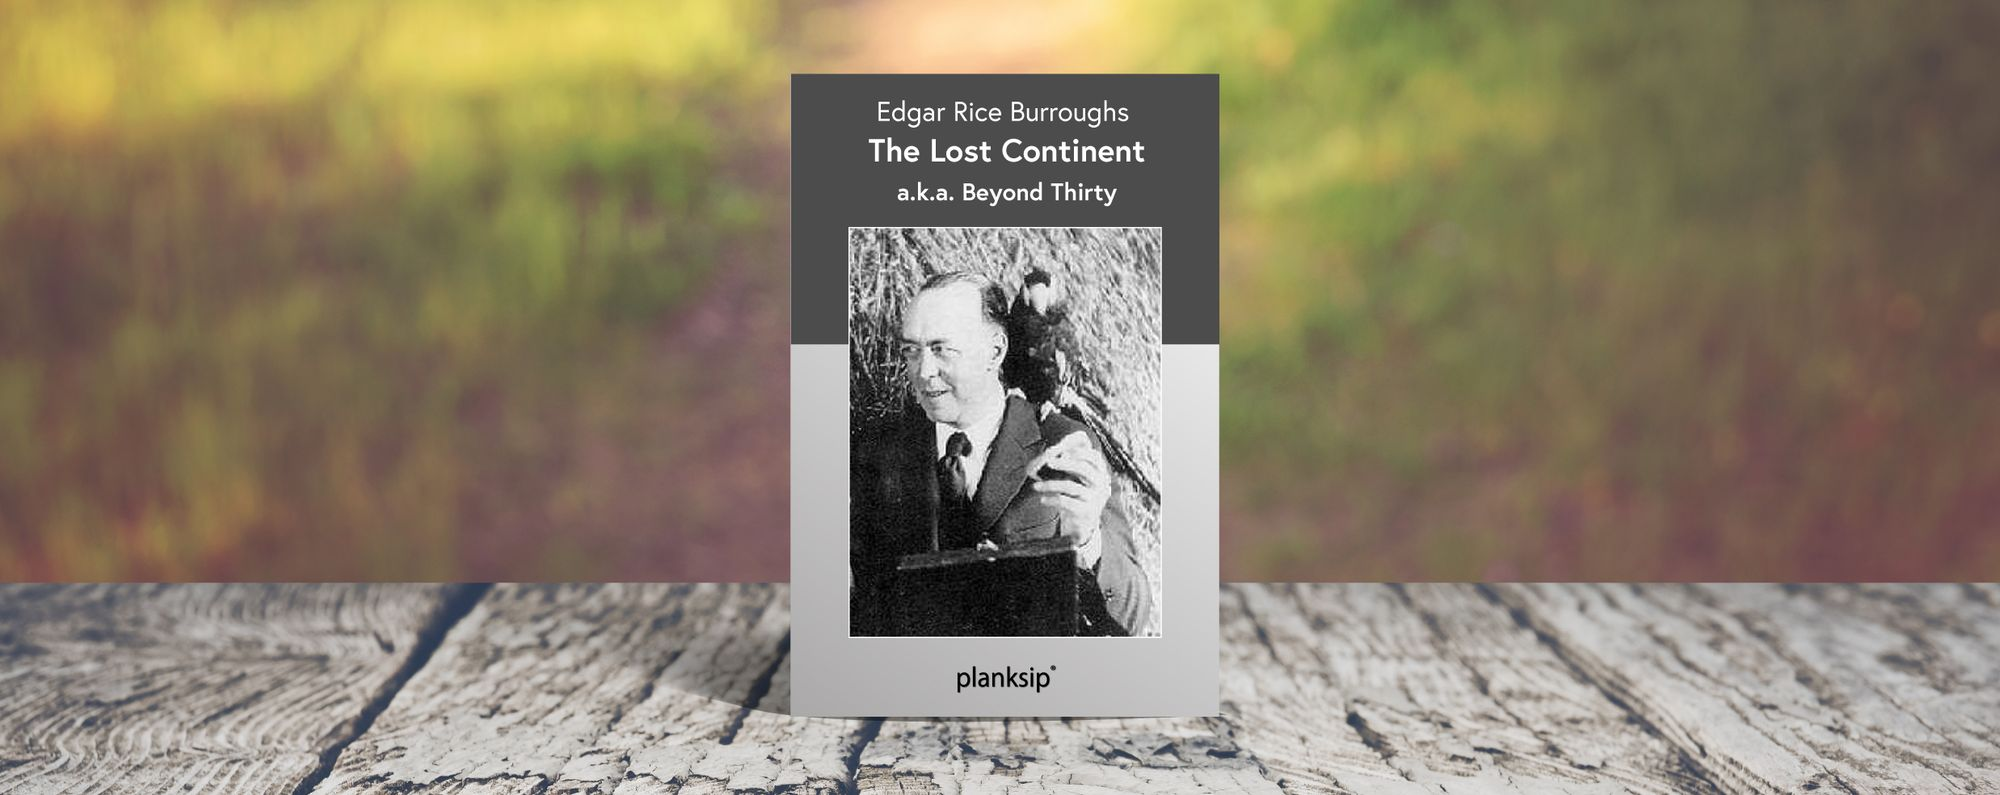 The Lost Continent by Edgar Rice Burroughs (1875-1950). Published by planksip